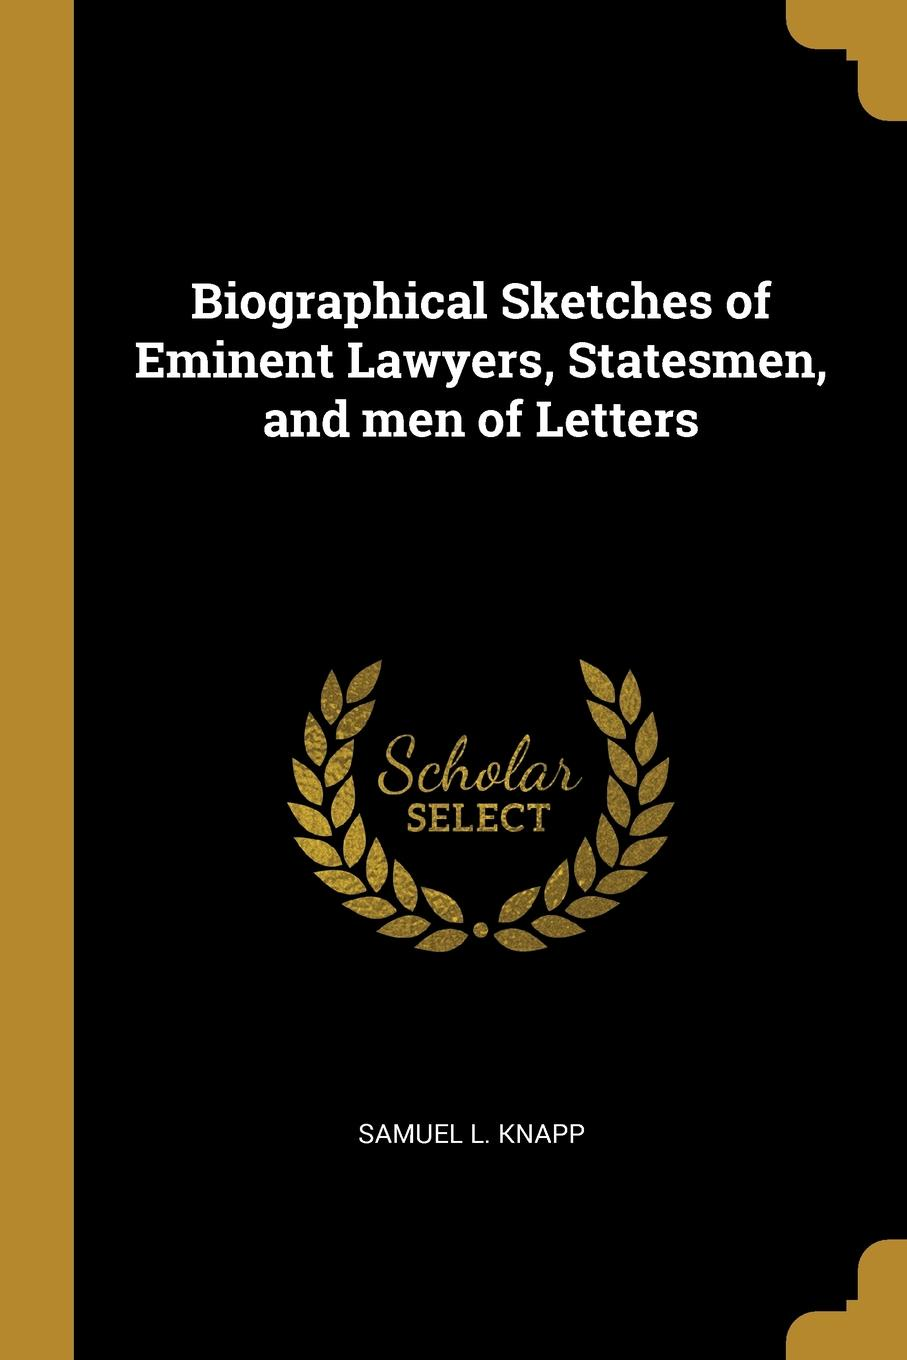 Samuel L. Knapp Biographical Sketches of Eminent Lawyers, Statesmen, and men of Letters knapp samuel lorenzo biographical sketches of eminent lawyers statesmen and men of letters